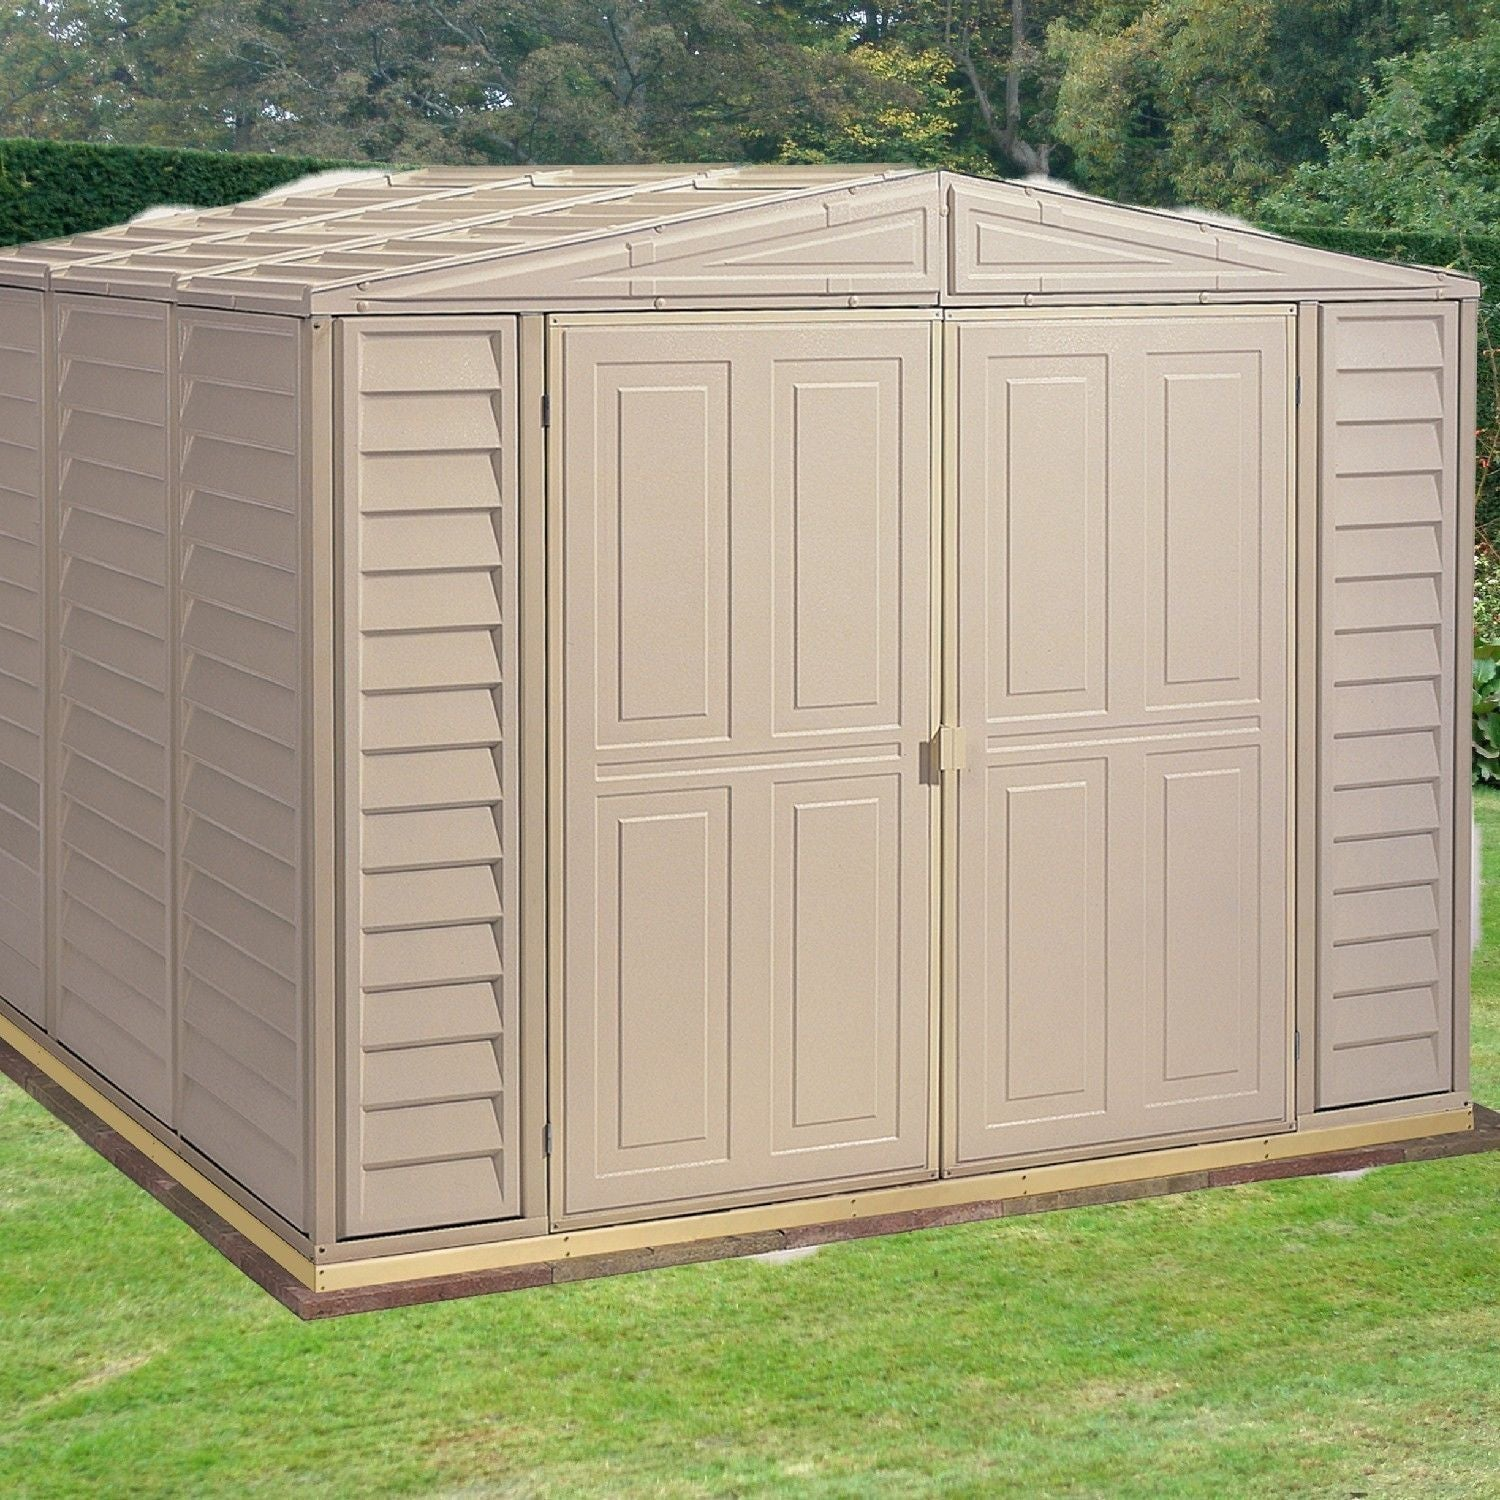 skylights dp shed amazon by window storage and lifetime lawn outdoor patio foot with shelving garden ca